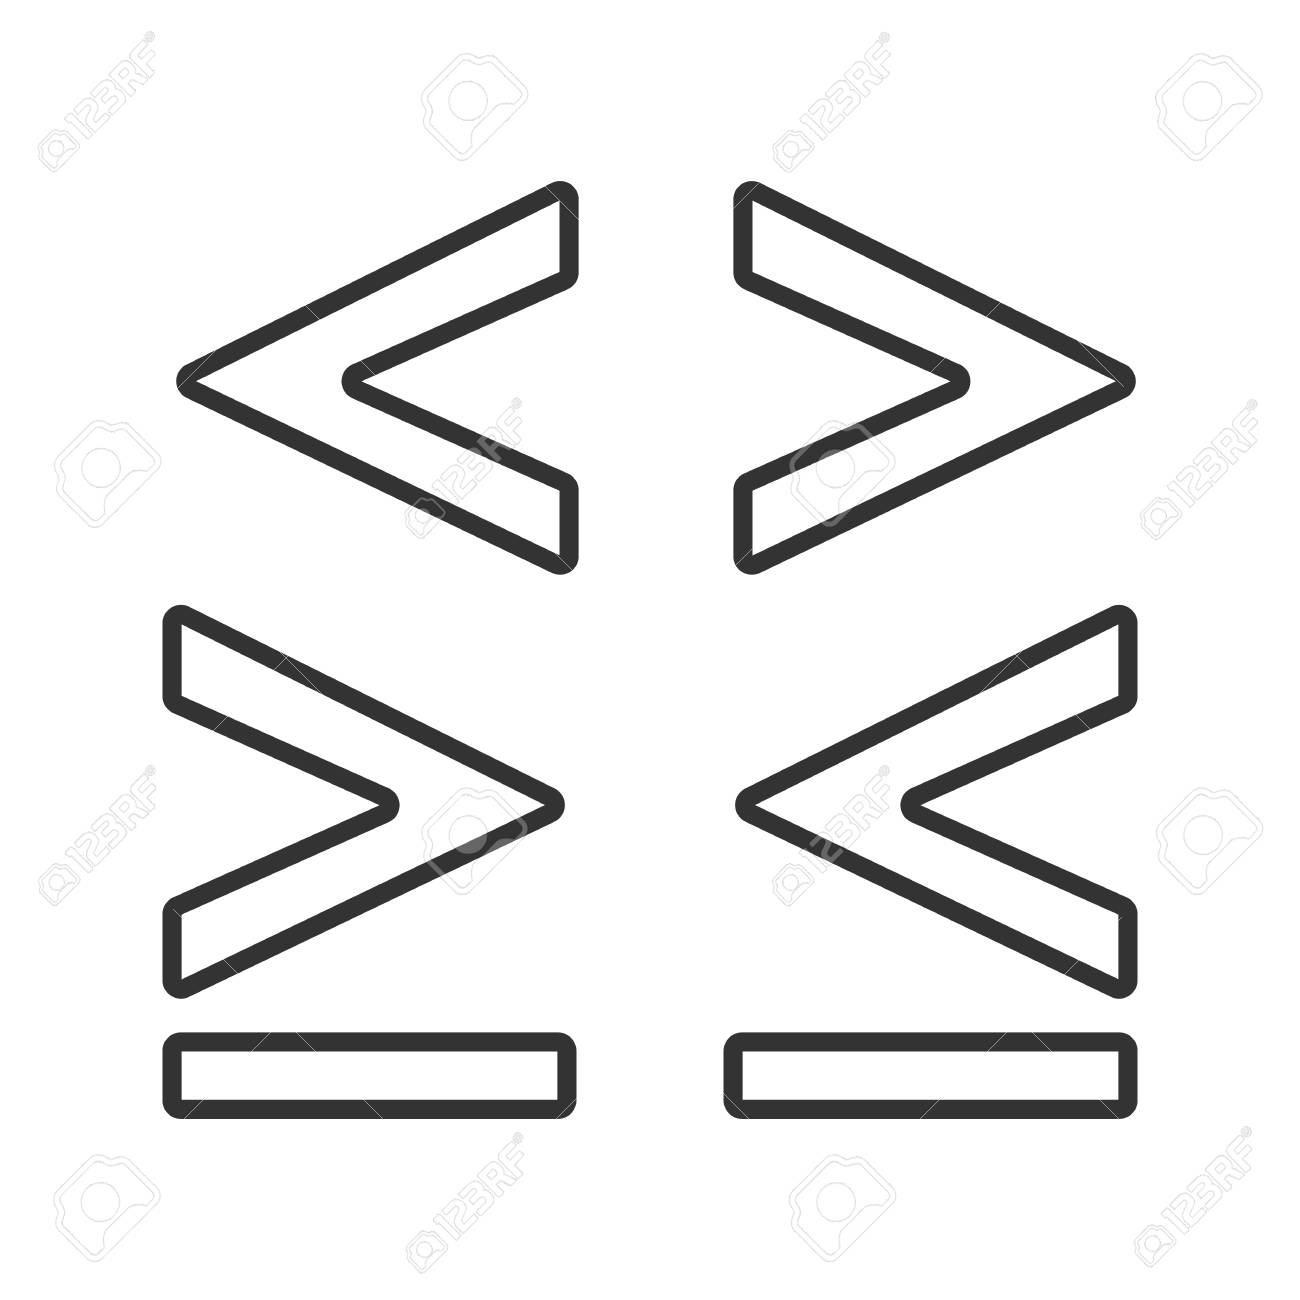 Math Symbol For Greater Than Gallery Meaning Of This Symbol